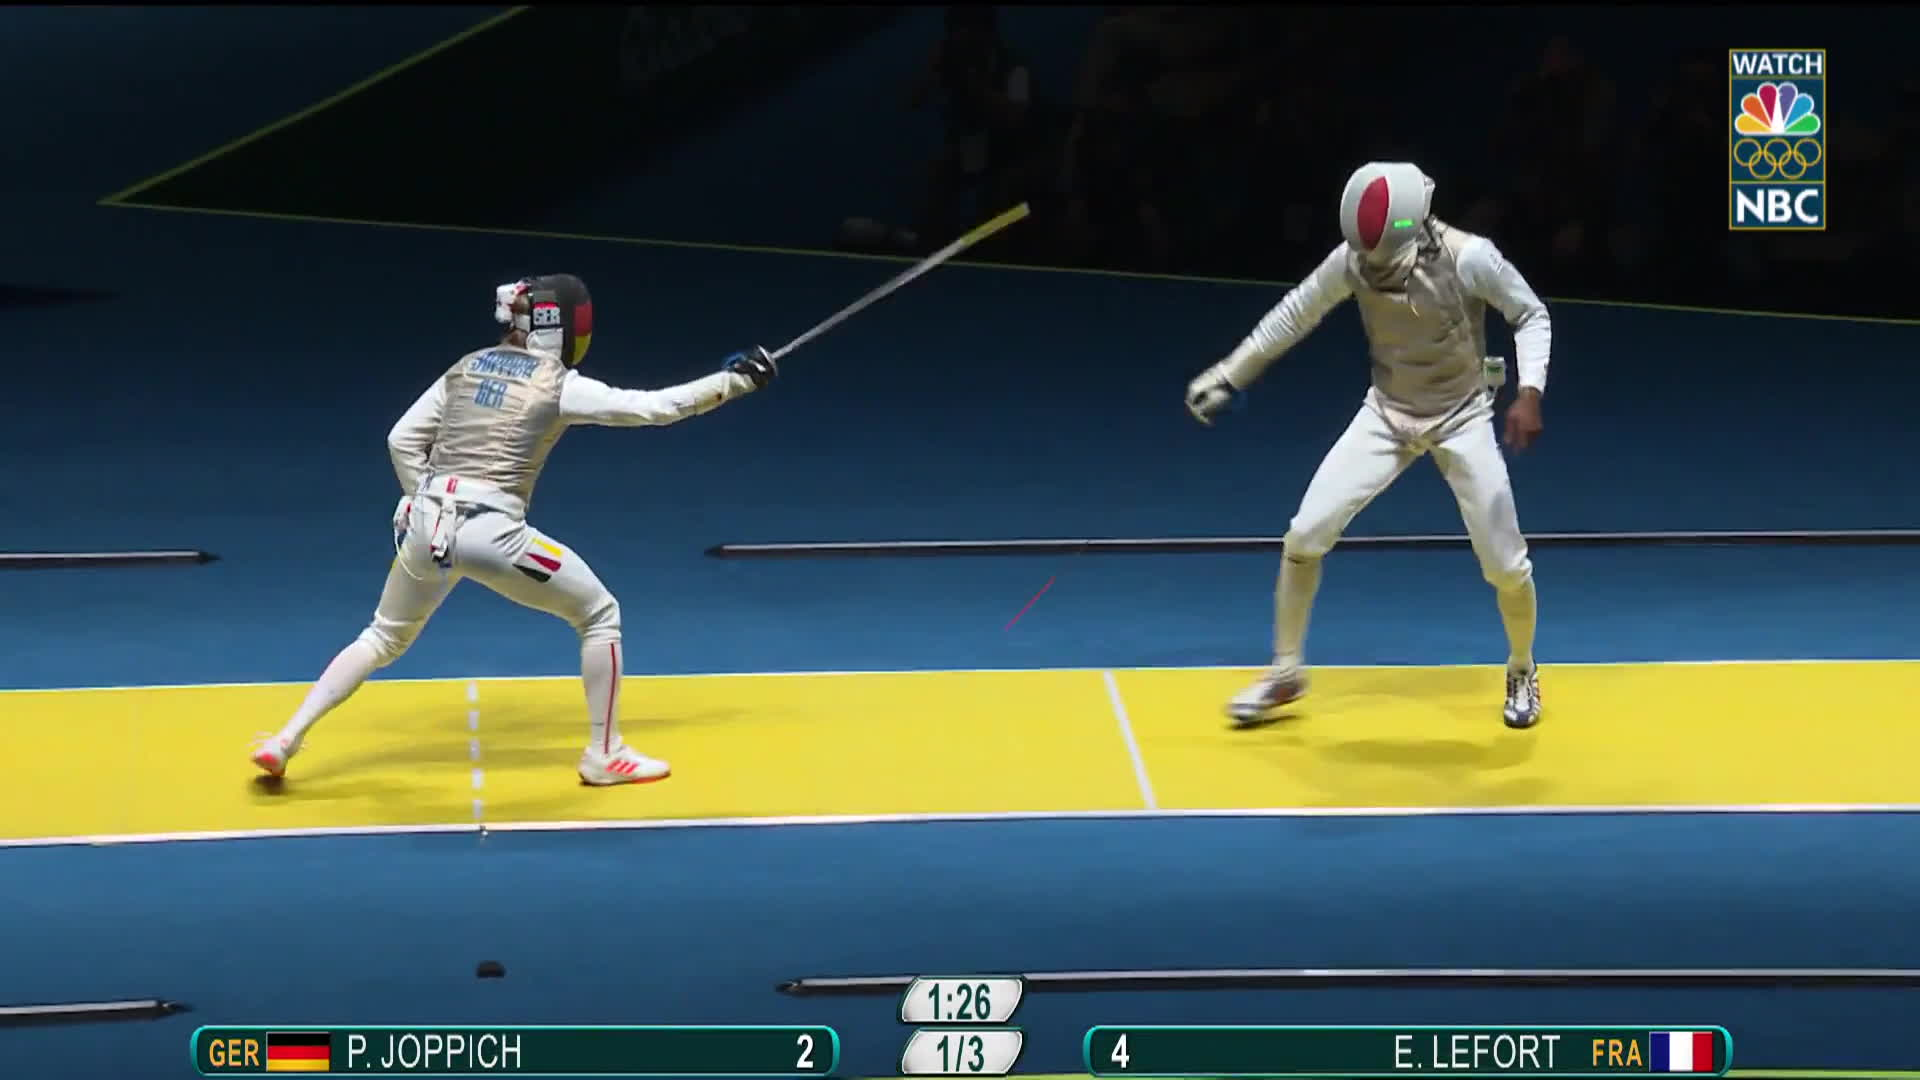 gifs, nbc olympics: rio 2016, olymgifs, France's Lefort loses his phone during a fencing tie-up GIFs